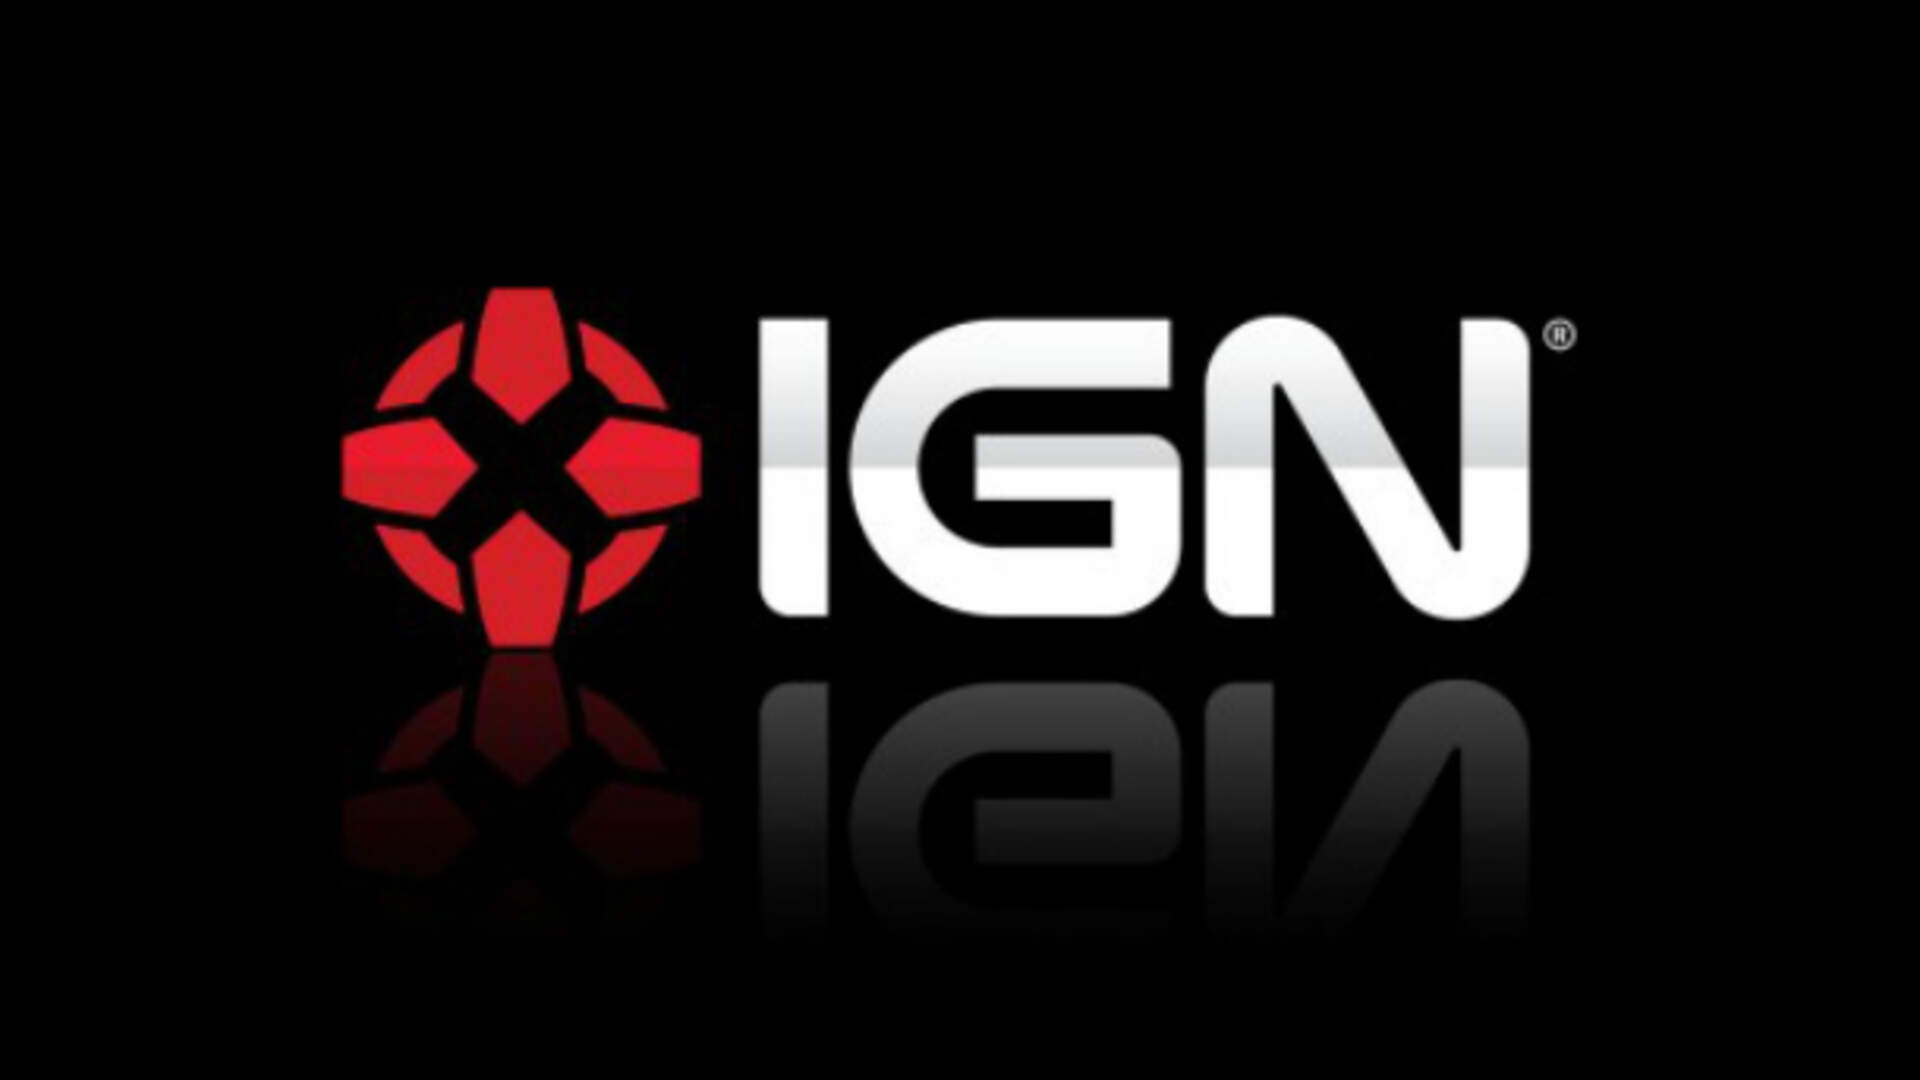 IGN Fires Editor-In-Chief After Investigation Into 'Alleged Misconduct'